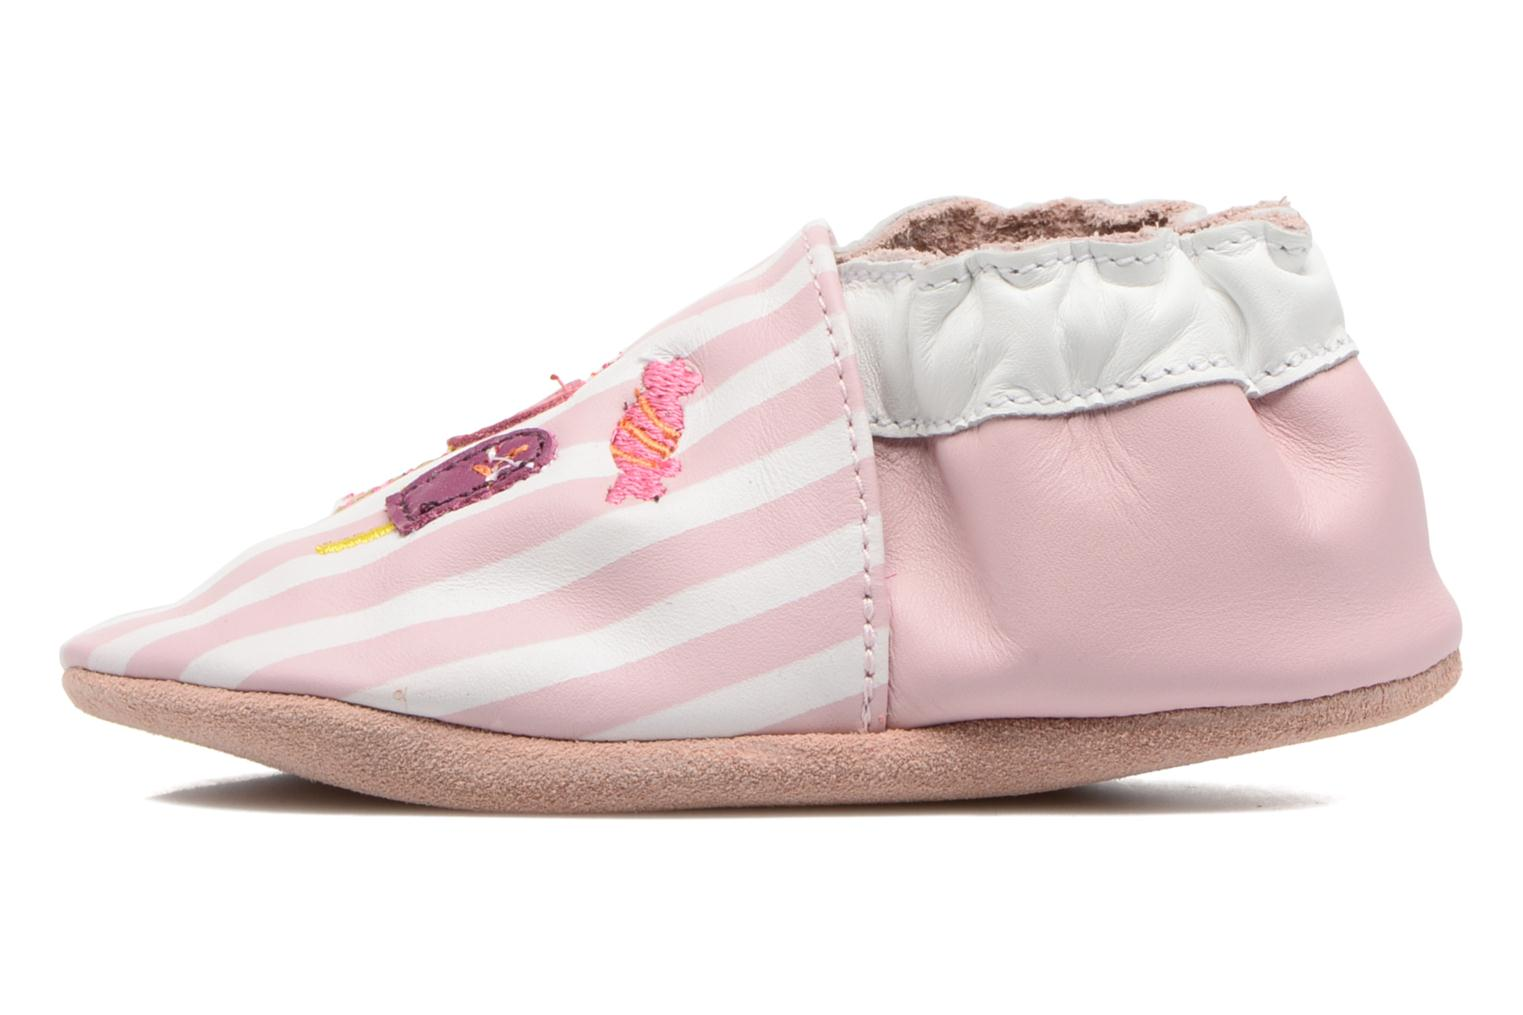 Chaussons Robeez Candy Shop Rose vue face